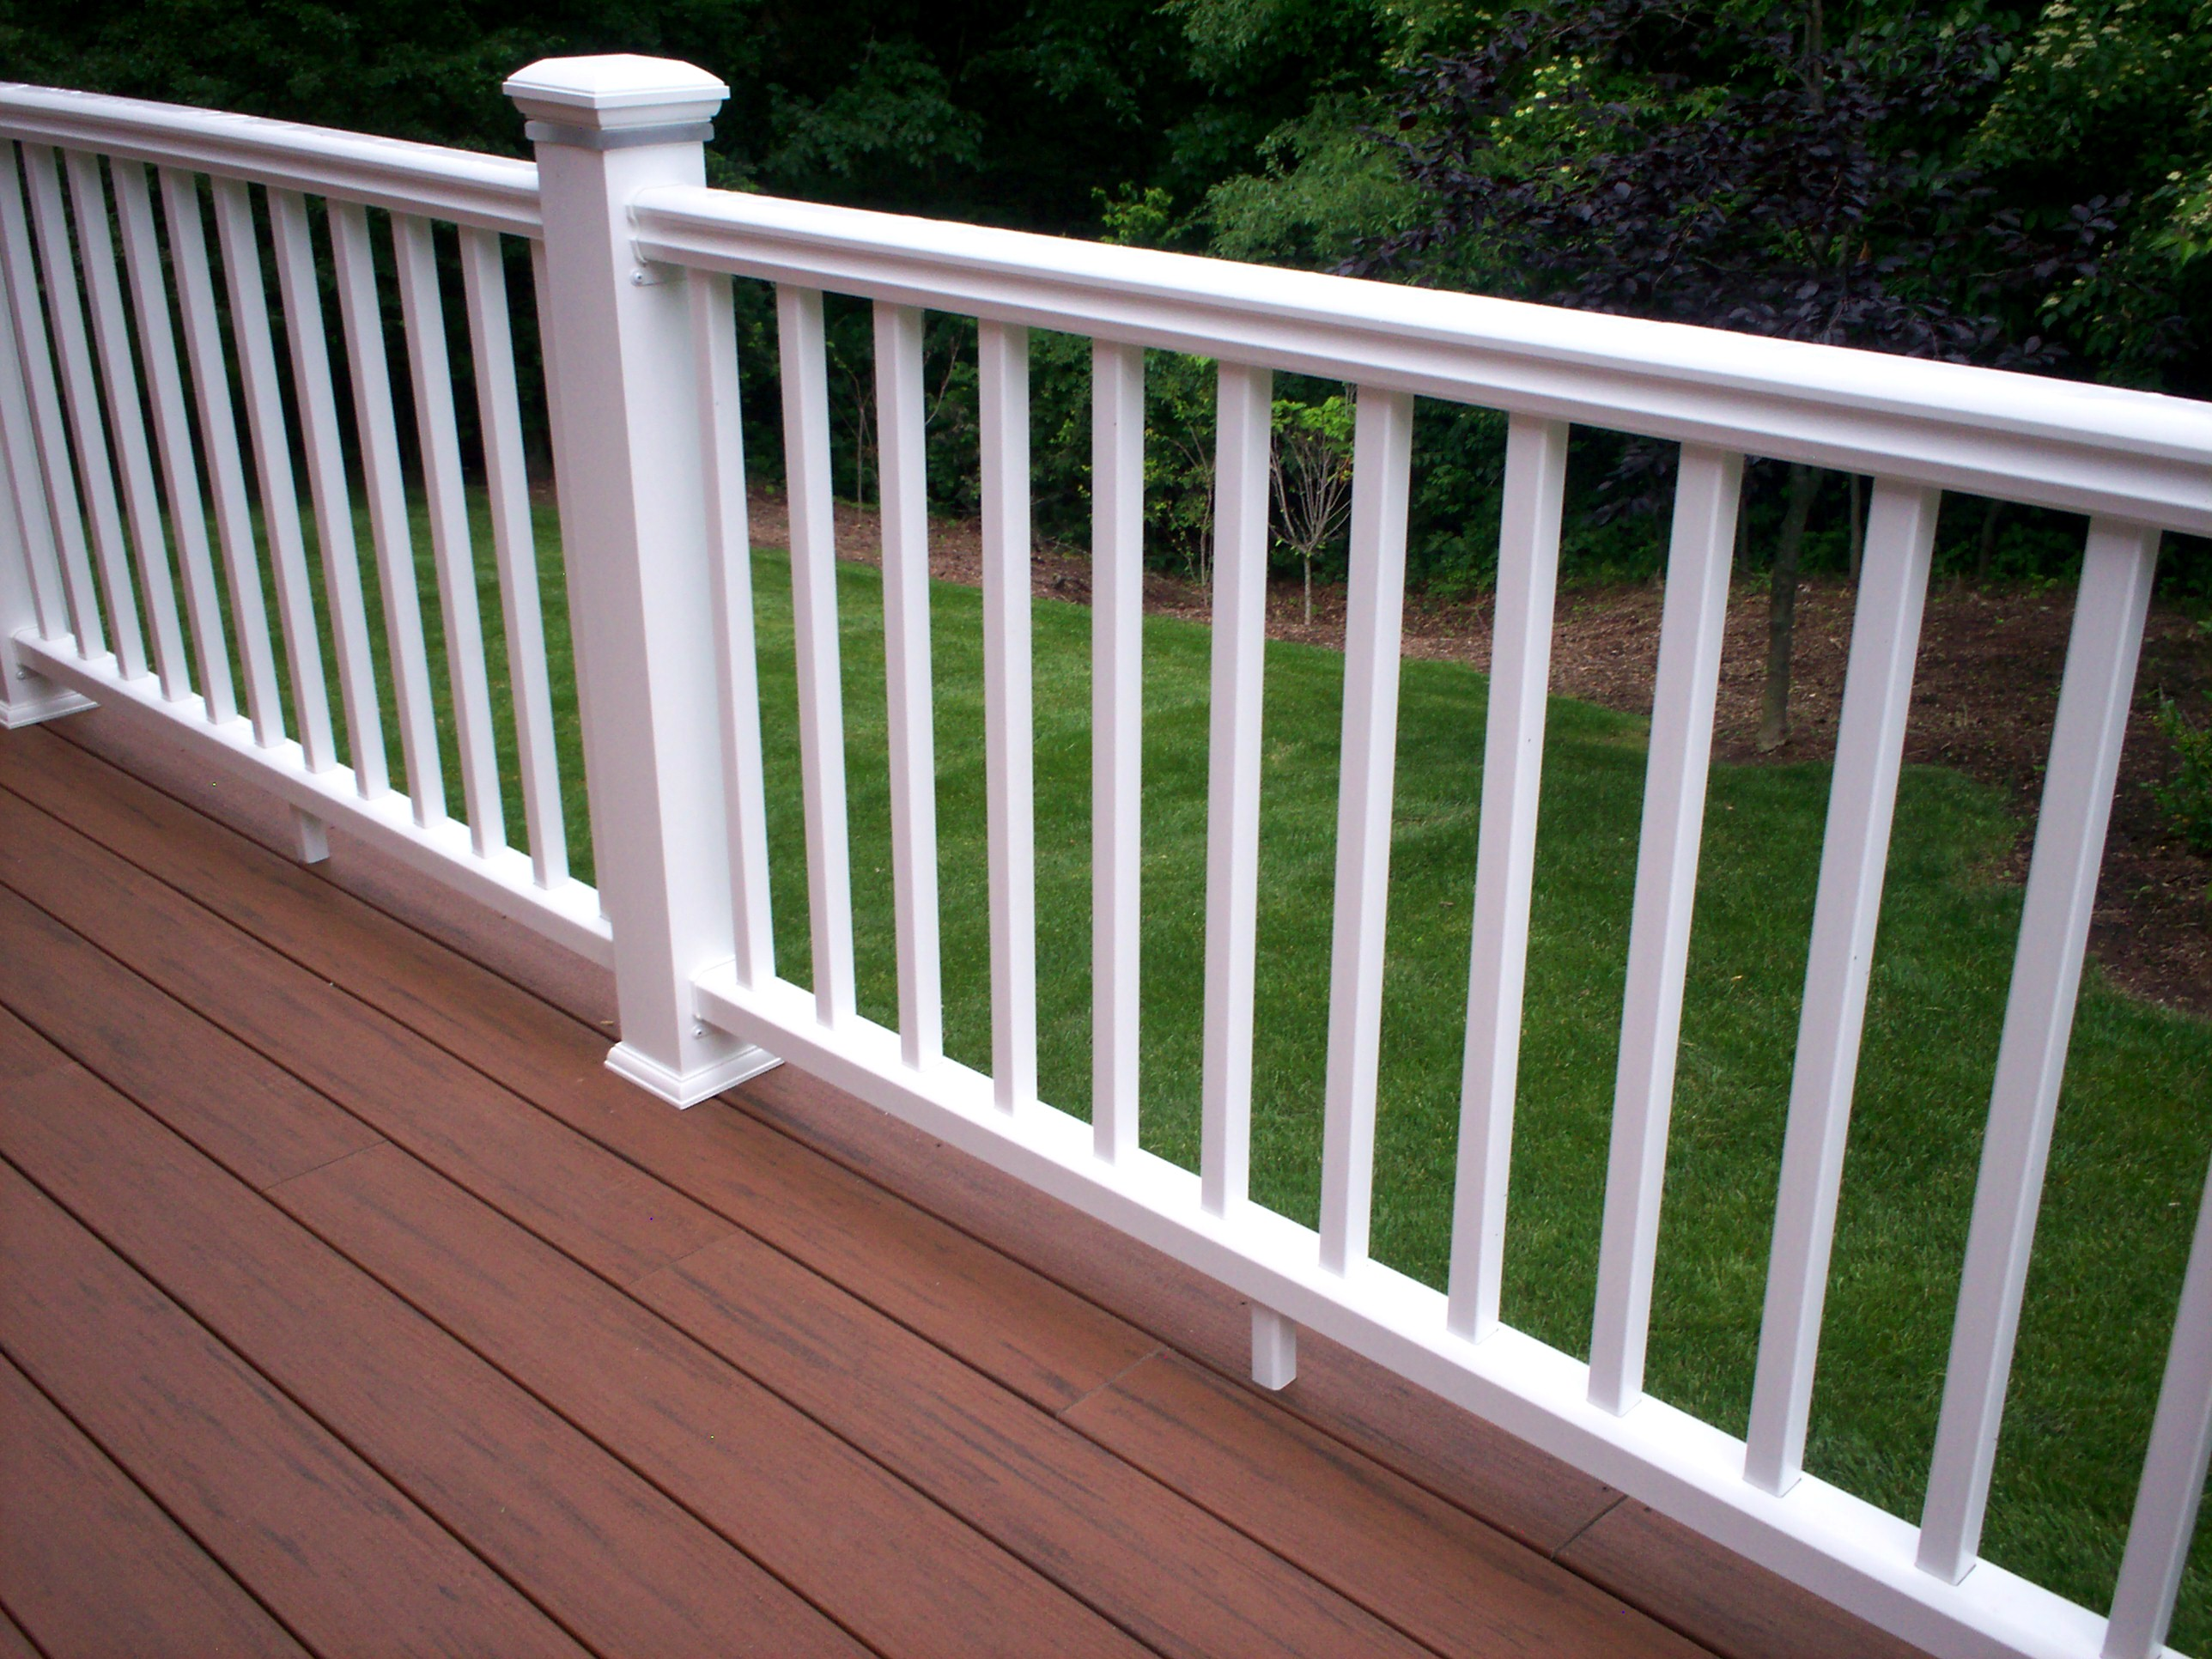 Timbertech decking why we love it and you should too for Best timber for decking